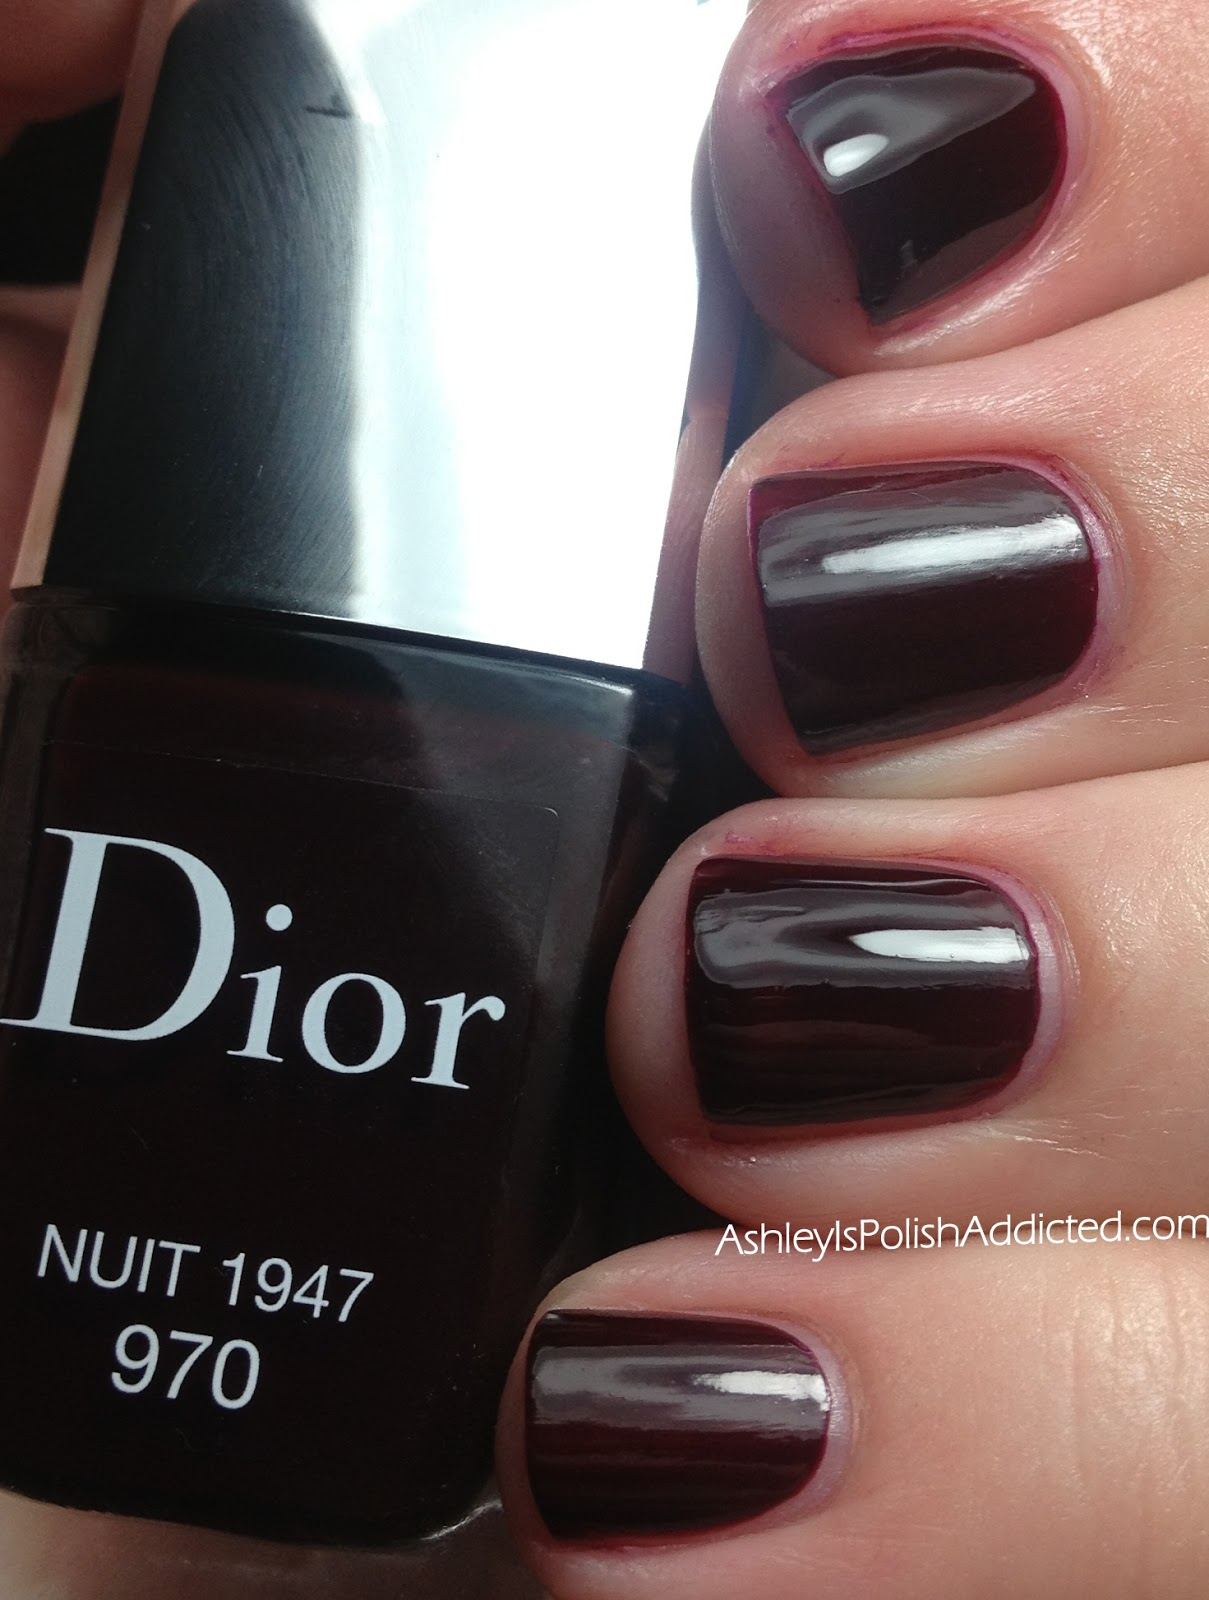 Ashley is PolishAddicted: Dior Nuit 1947 (970) - Swatches and Review ♥